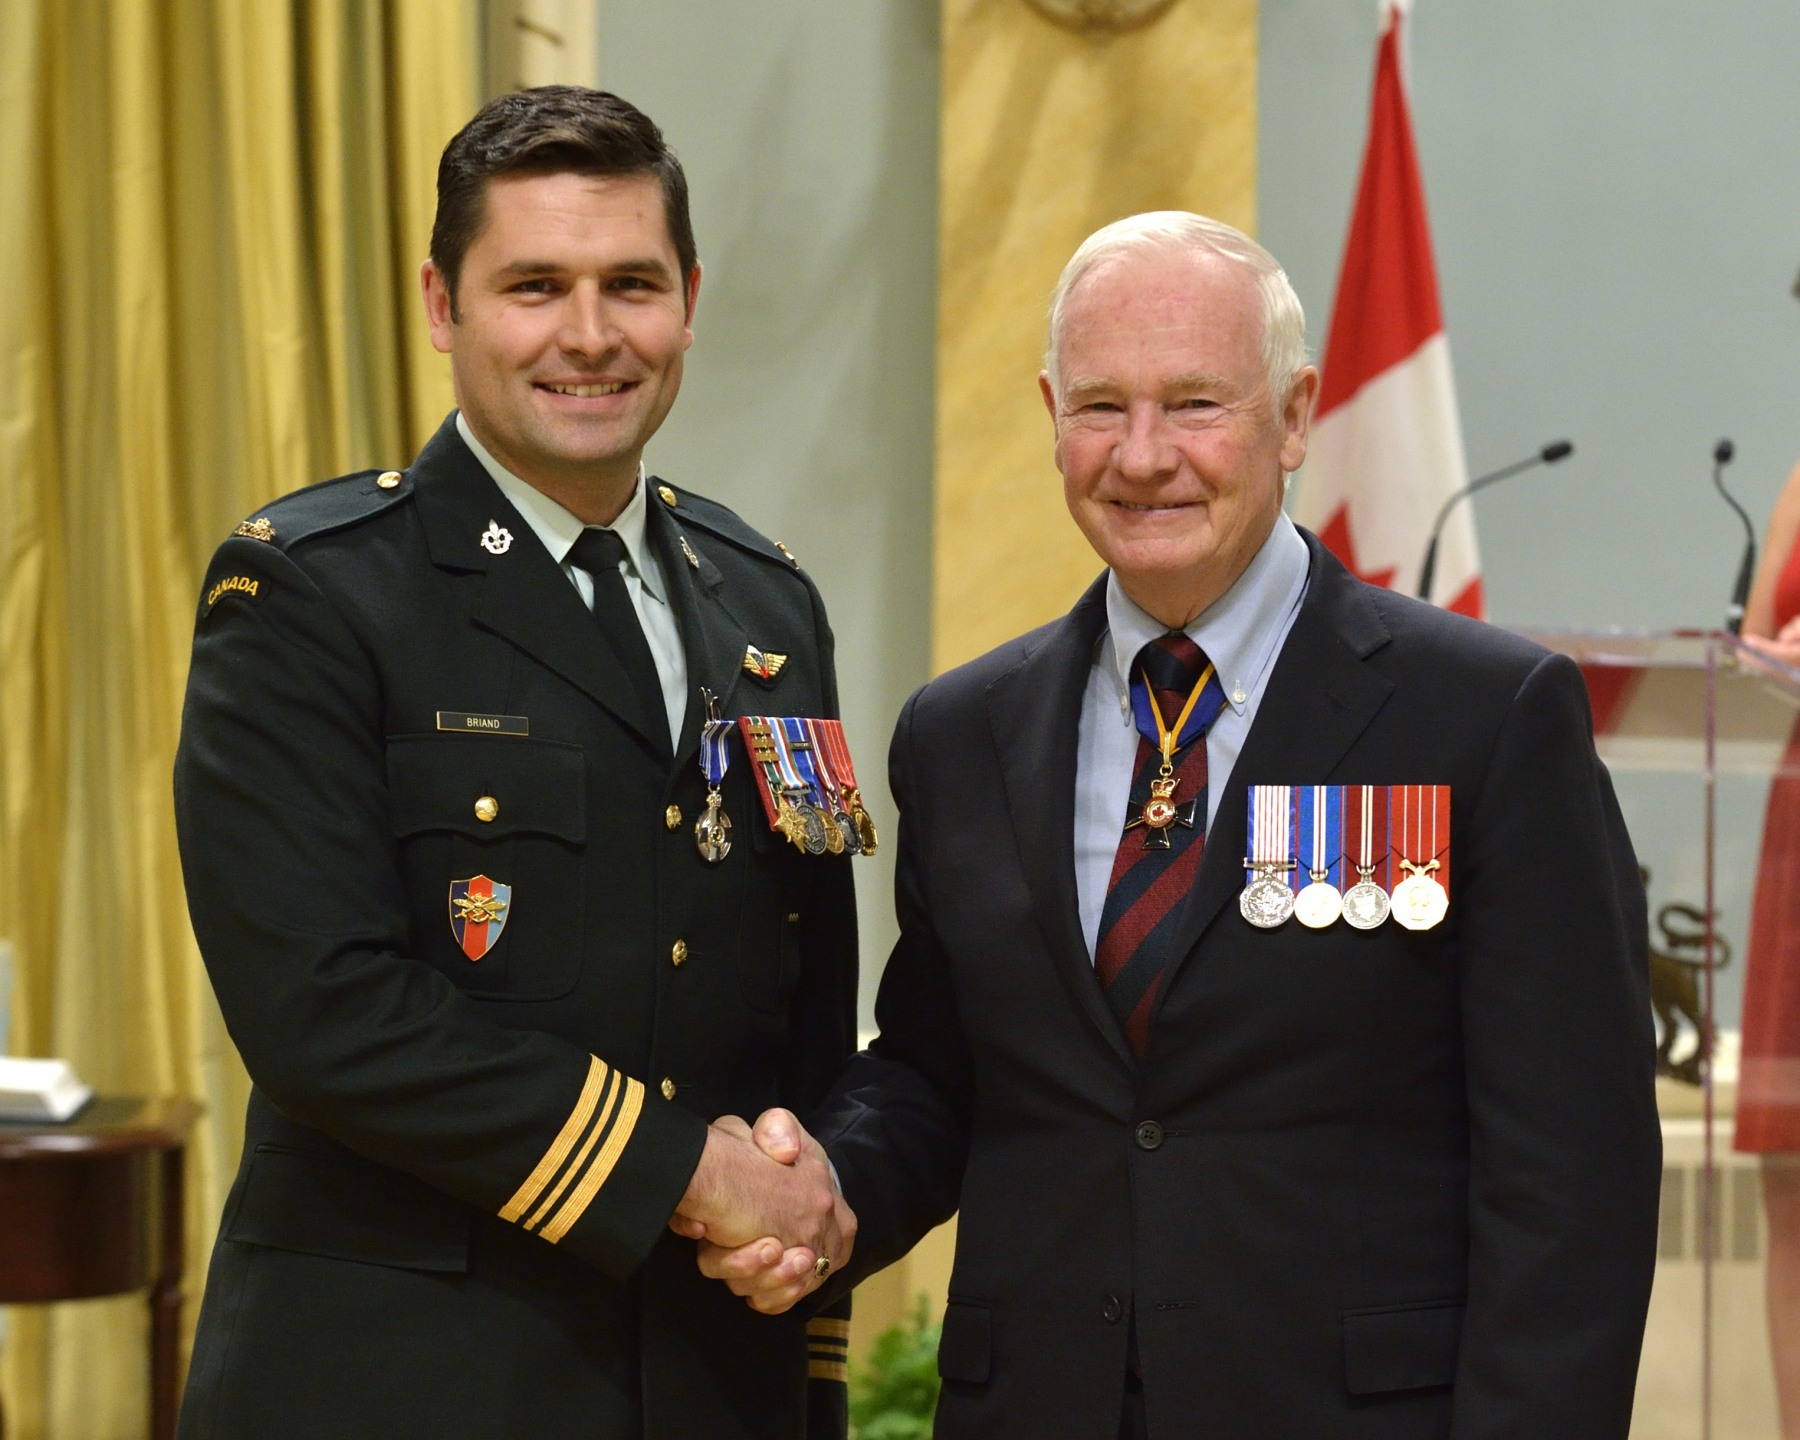 Major Joseph Éric Stéphane Briand, M.S.M., C.D. (LaSalle, Quebec) received the Meritorious Service Medal (Military Division). Major Briand commanded a team of mentors deployed to Afghanistan from November 2010 to June 2011, where he distinguished himself by his exceptional strategic acumen. With extraordinary initiative, he professionalized the efforts of the Afghan National Army on several occasions, both while stationed in garrison and in the field. Major Briand's keen planning sense, resilience and composure contributed greatly to the operational success of the coalition forces.